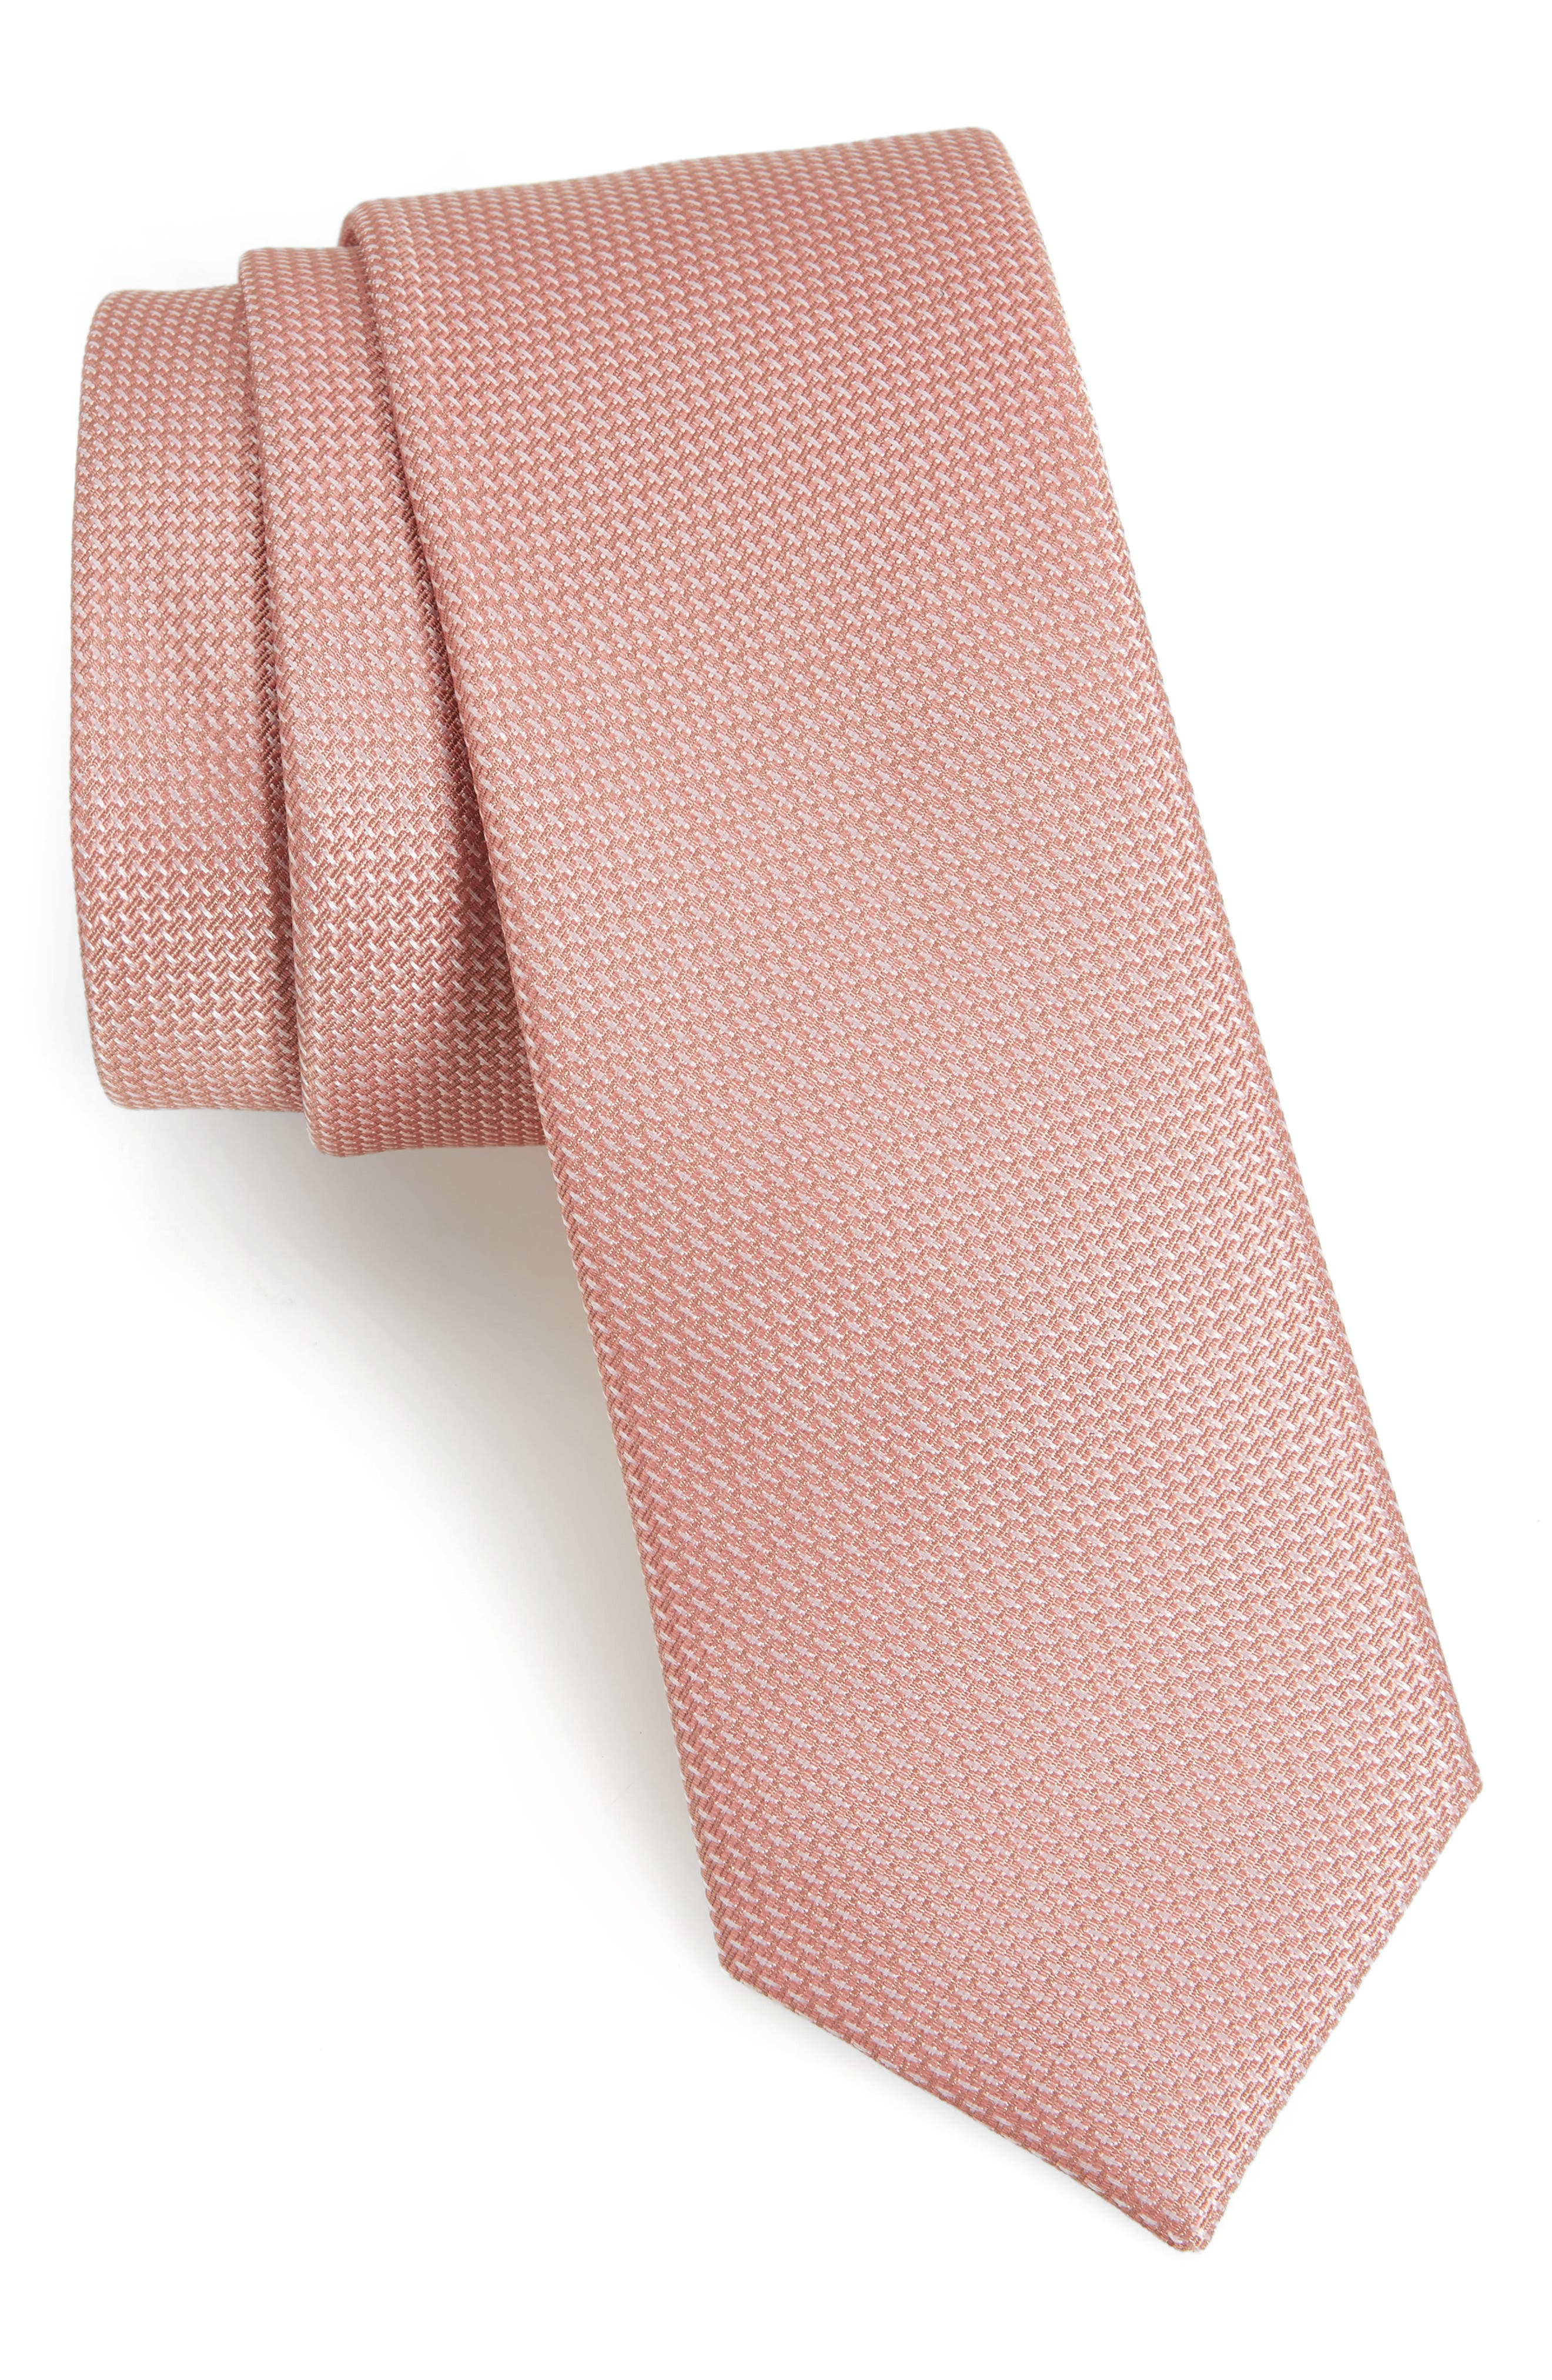 Union Solid Silk Tie,                             Main thumbnail 1, color,                             Blush Pink